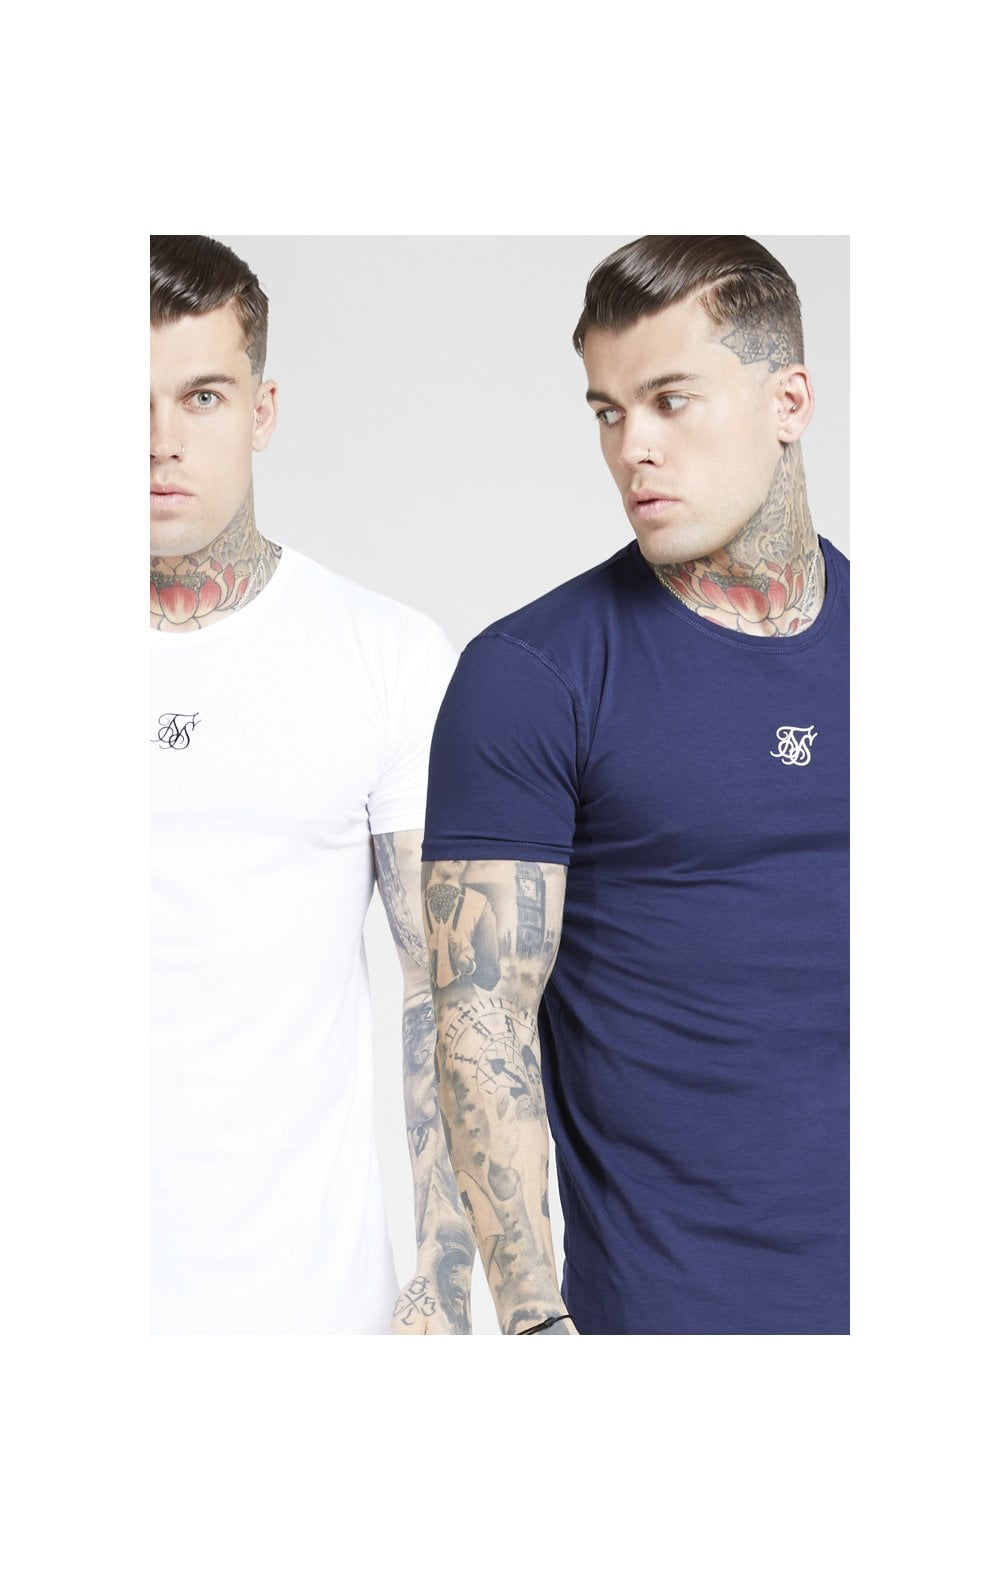 Load image into Gallery viewer, SikSilk Lounge Tee - White & Navy (2 Pack) - 1 White Tee & 1 Navy Tee